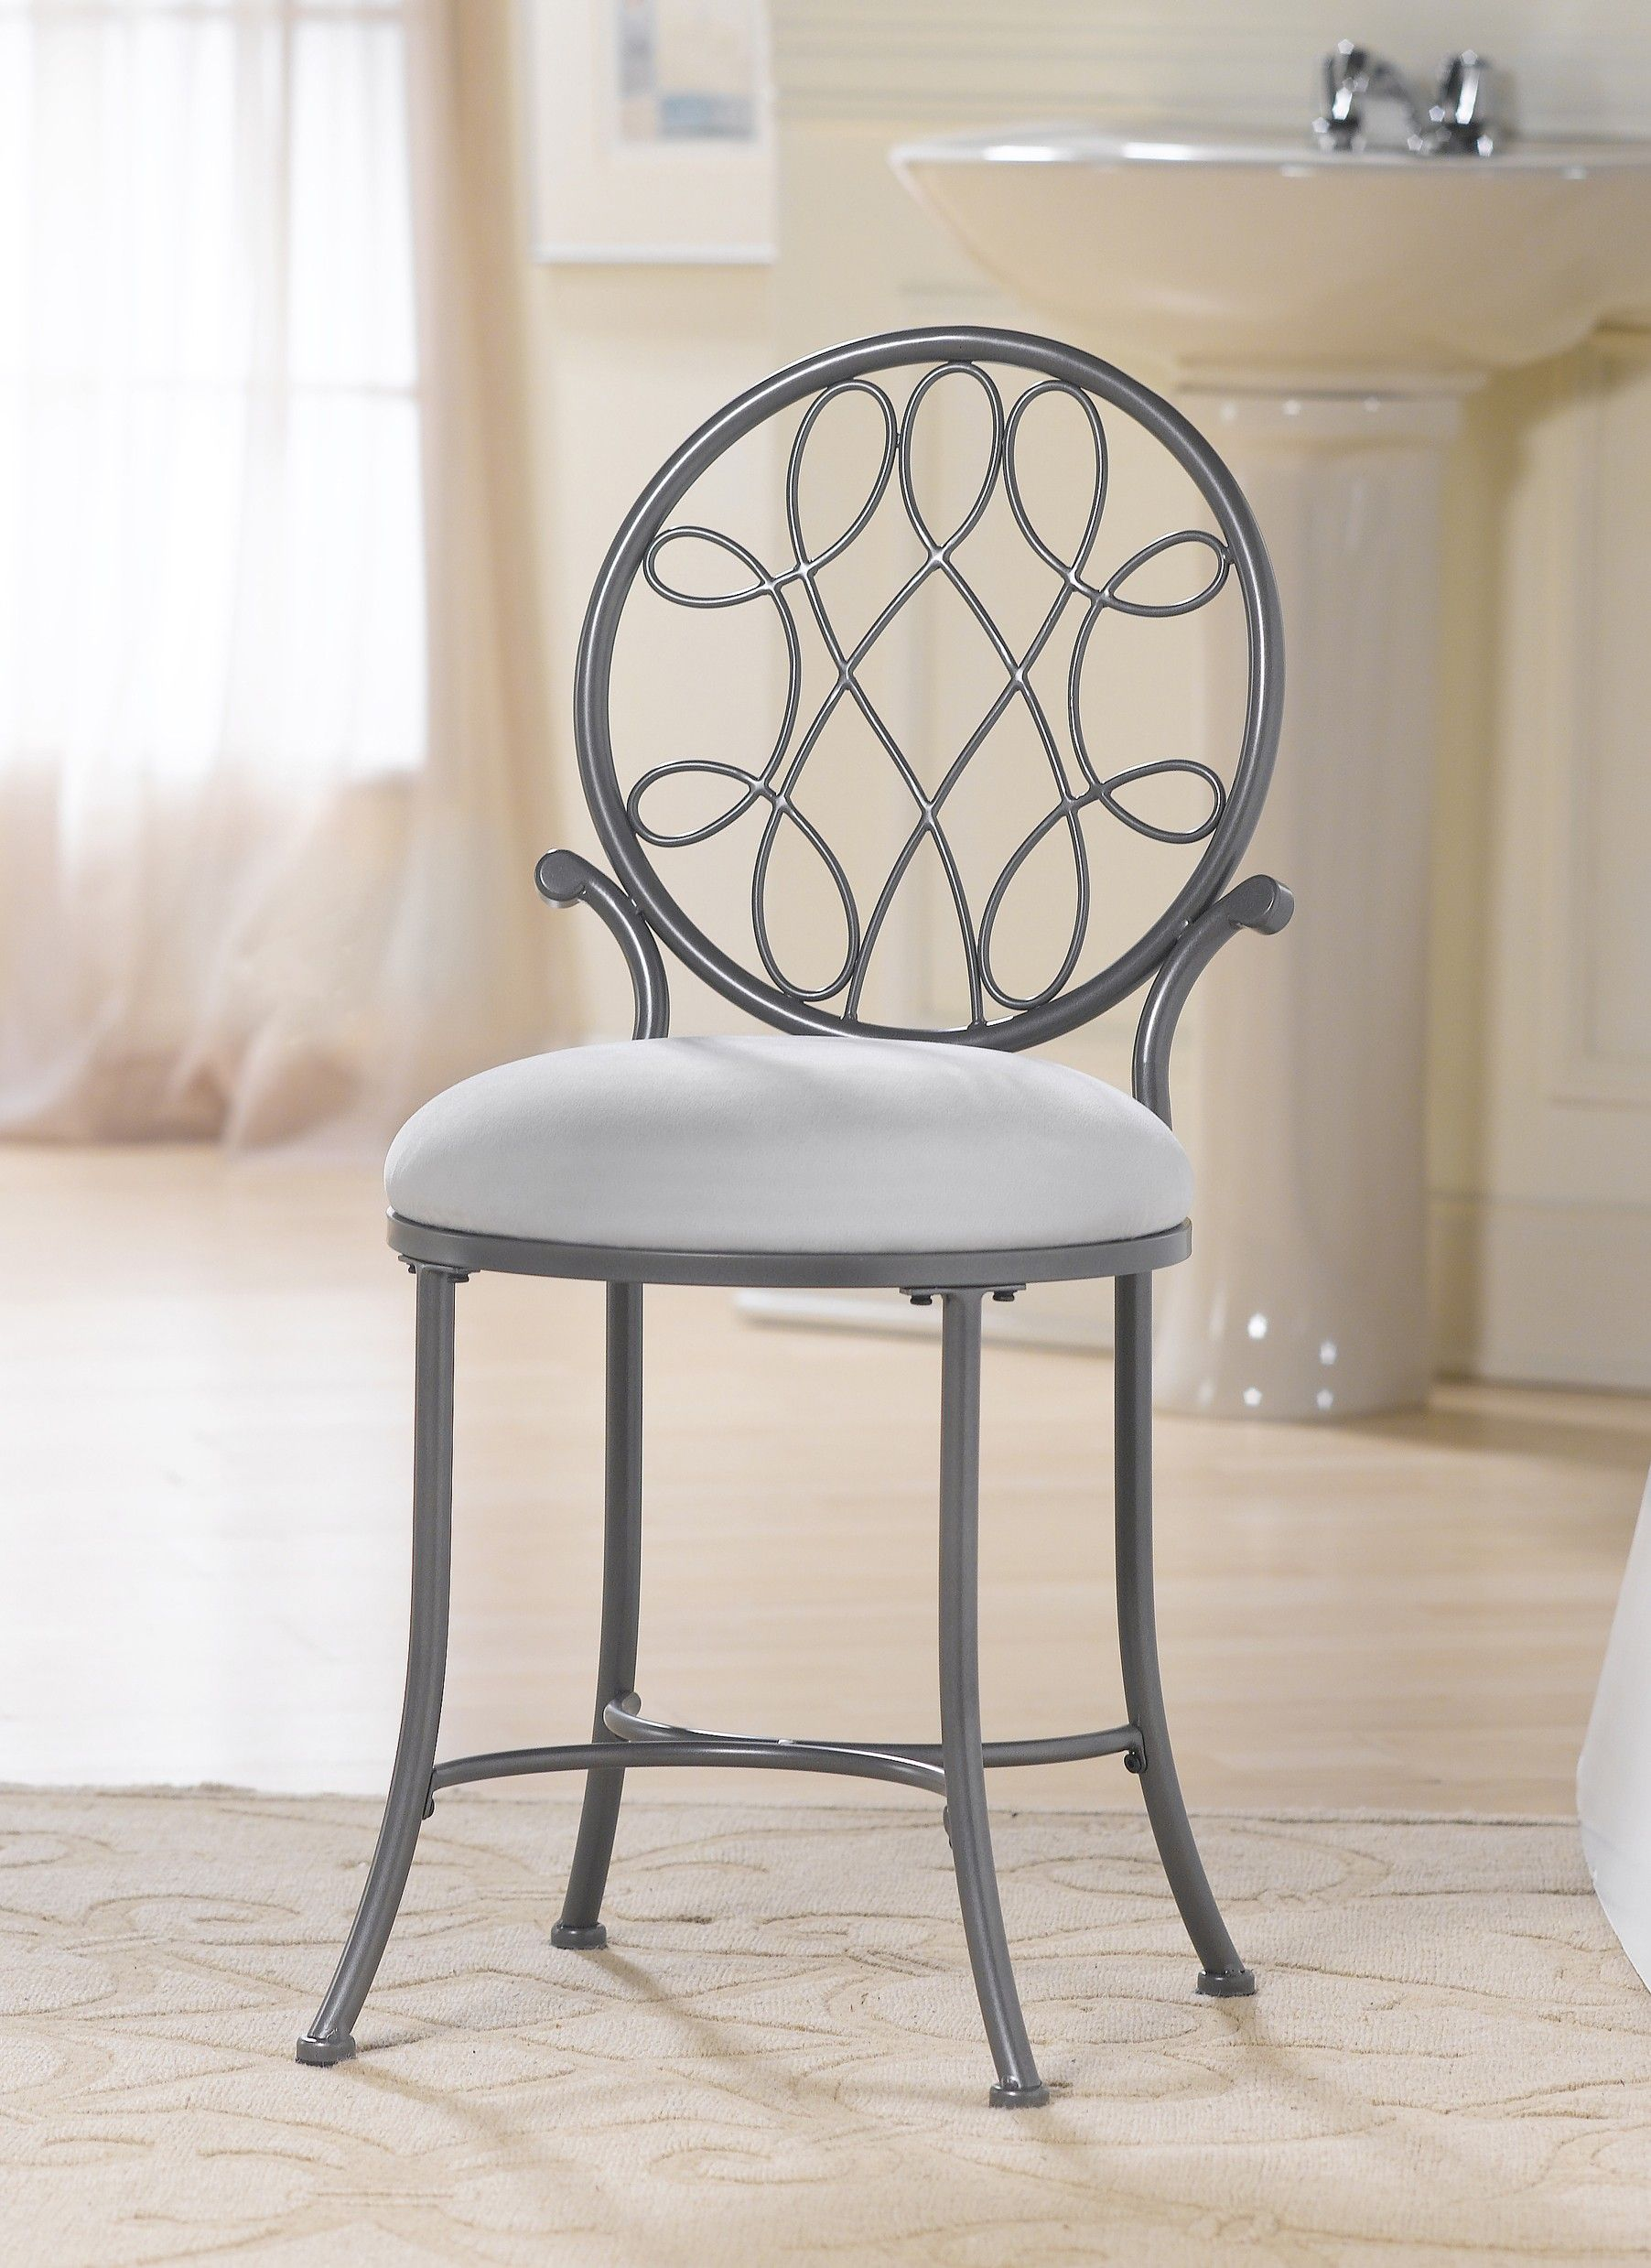 Bathroom Furniture Gray Polished Wrought Iron Vanity Chair